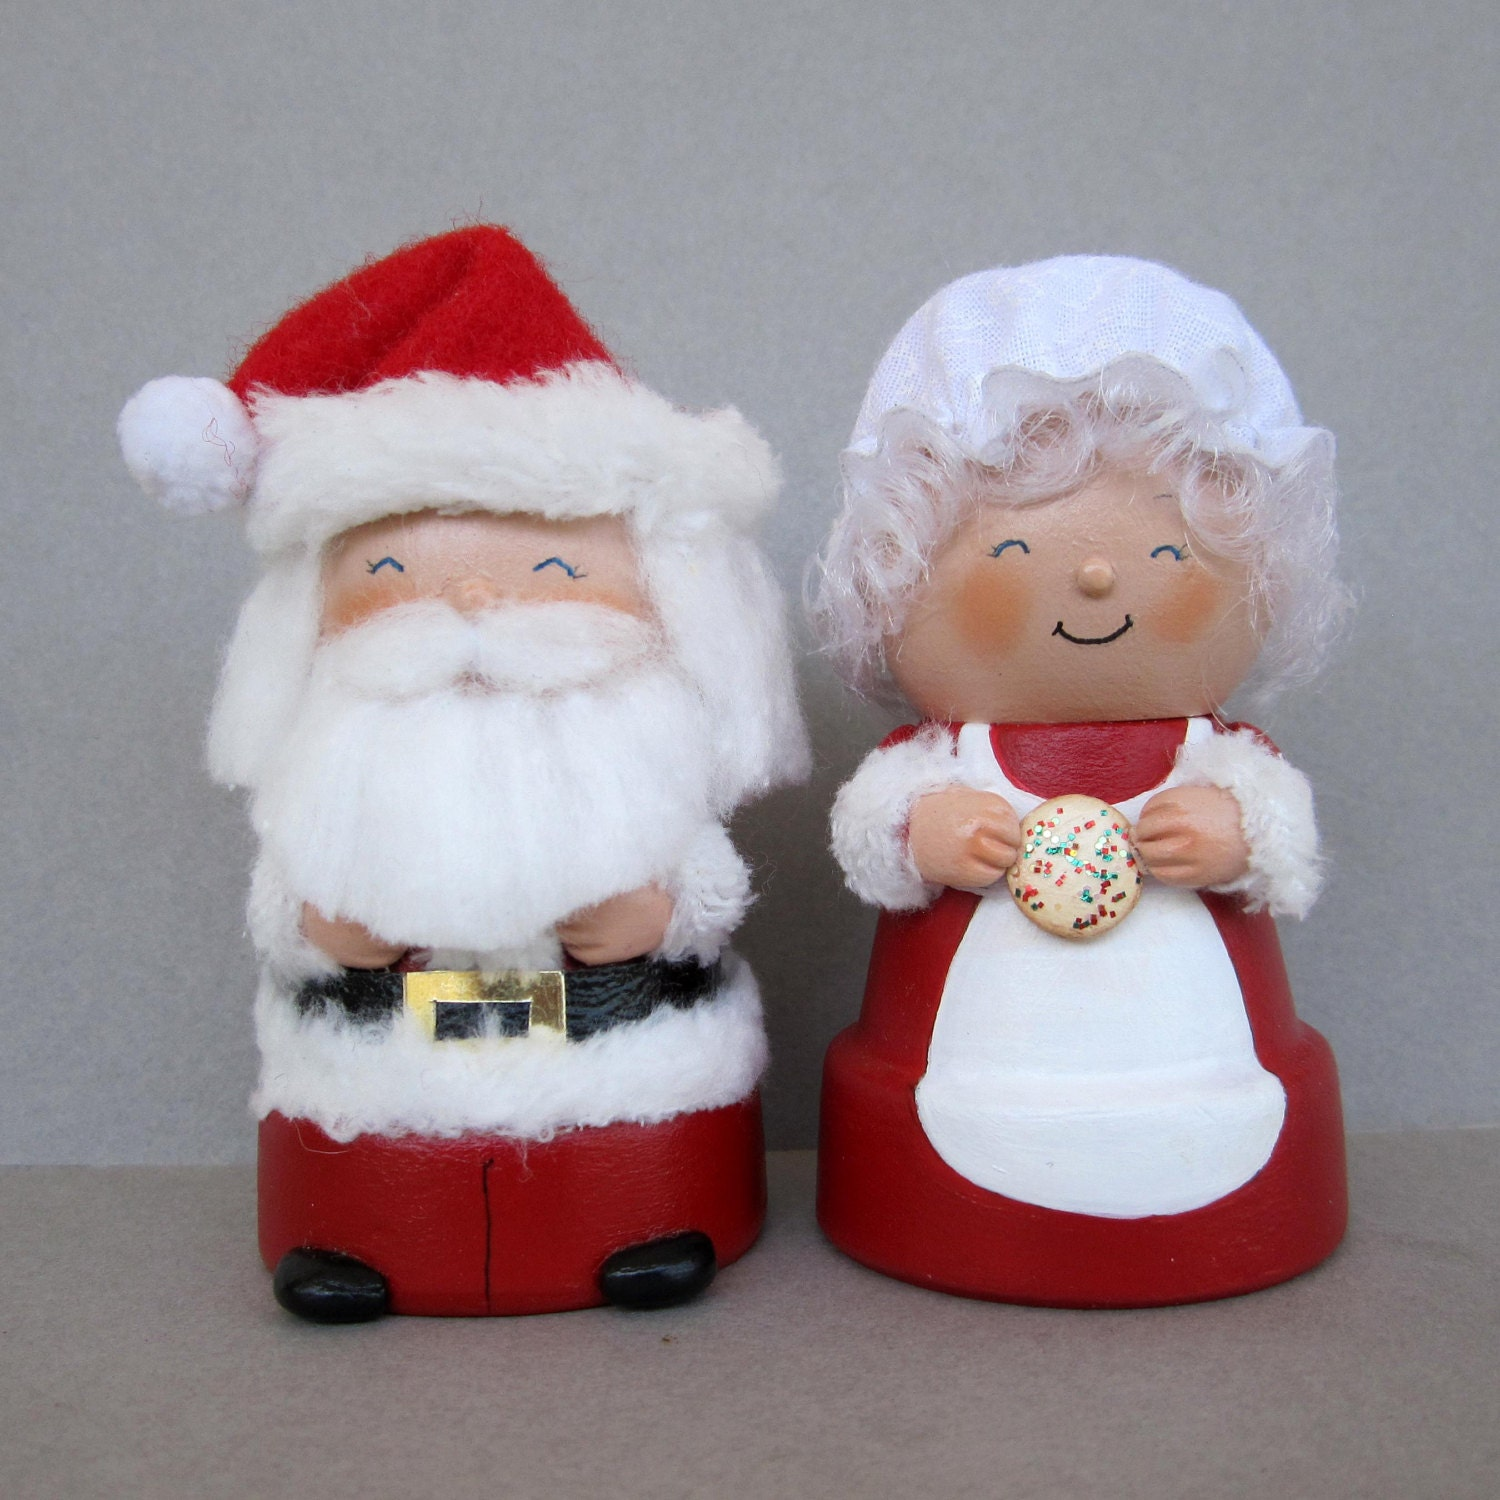 Santa and mrs claus flowerpot bell ornaments by